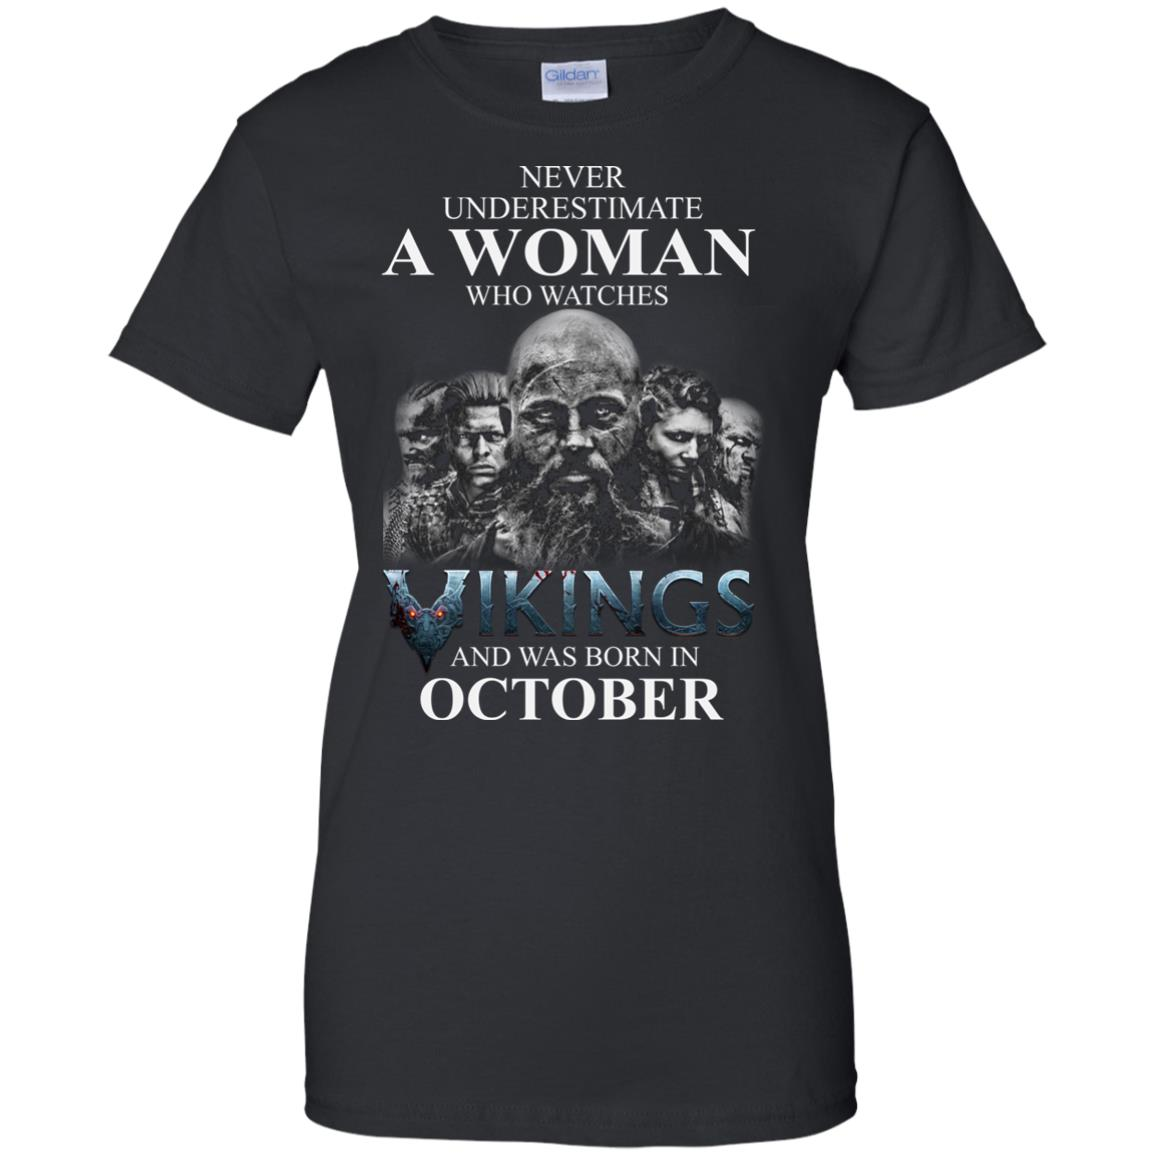 image 1253 - Never Underestimate A woman who watches Vikings and was born in October shirt